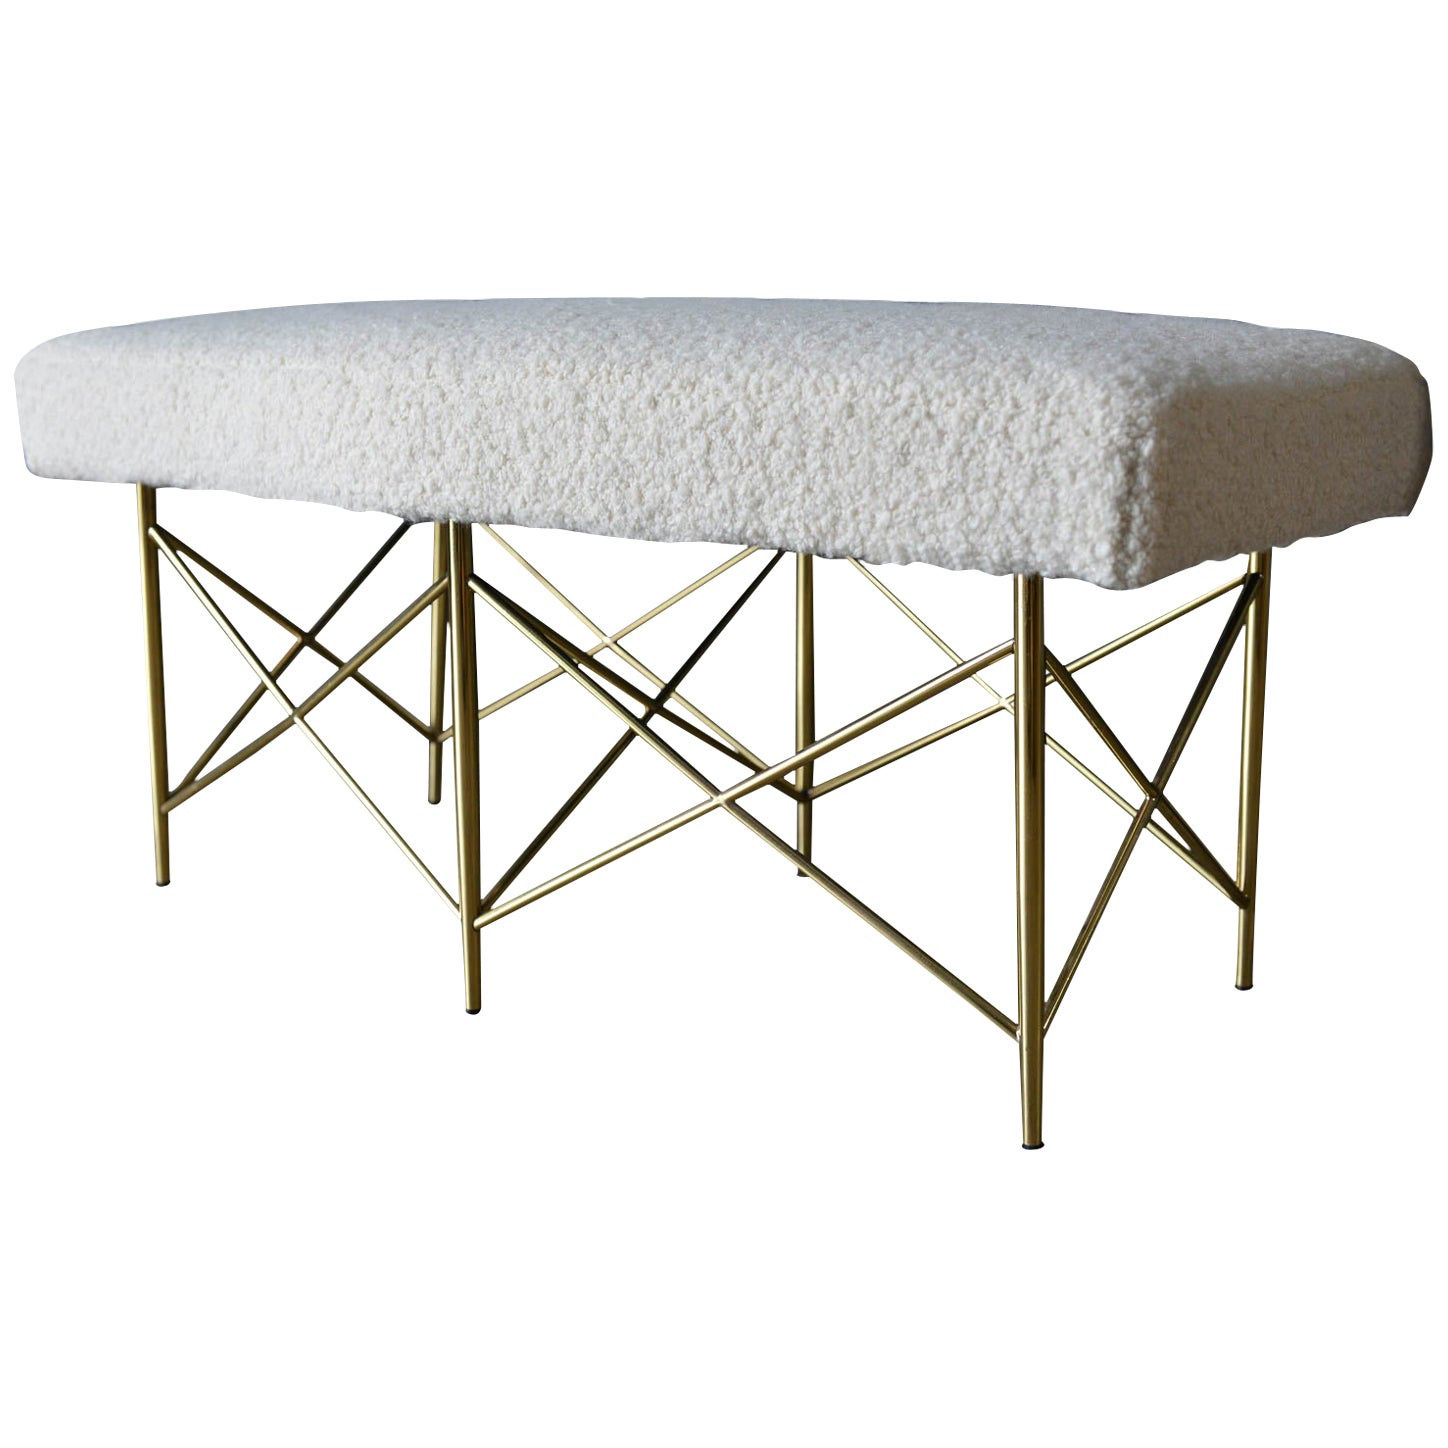 Ivory Bouclé and Brass X-Base Ottoman or Bench, circa 1970